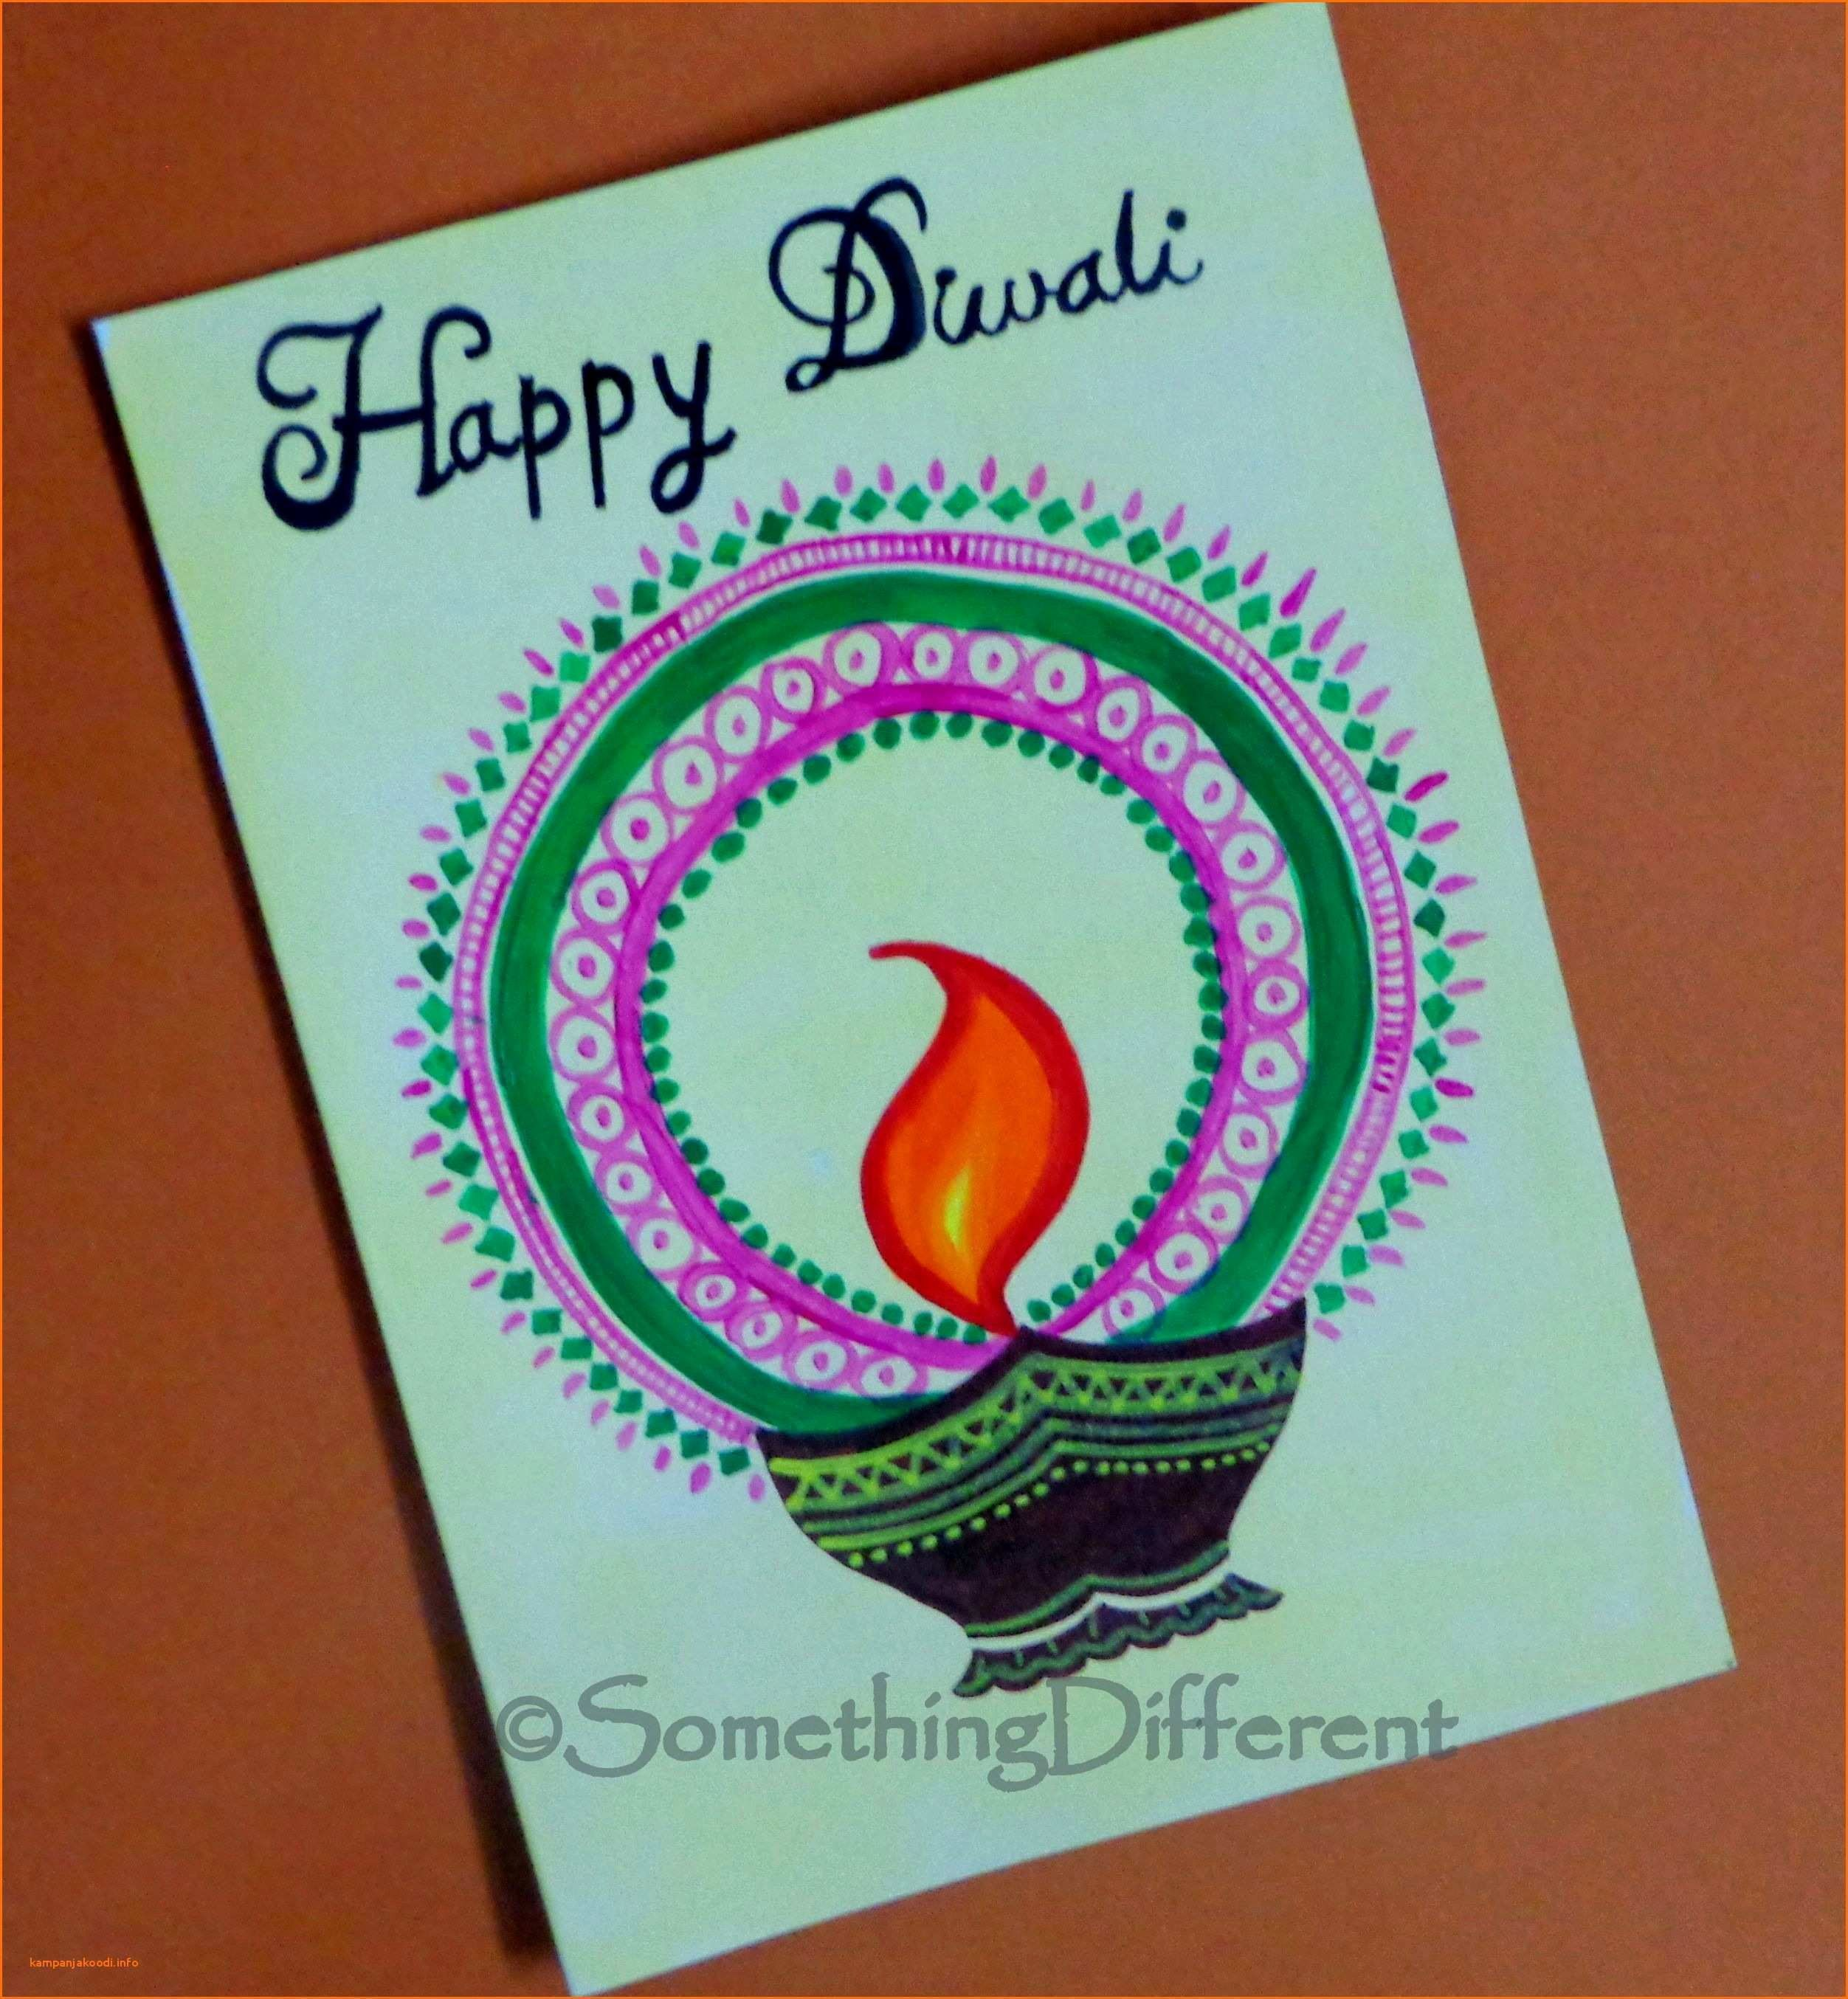 Diwali Greeting Cards Inspirational Diwali Greeting Letter Format Wishes For Baby Templ Diwali Card Making Diwali Greeting Cards Handmade Diwali Greeting Cards